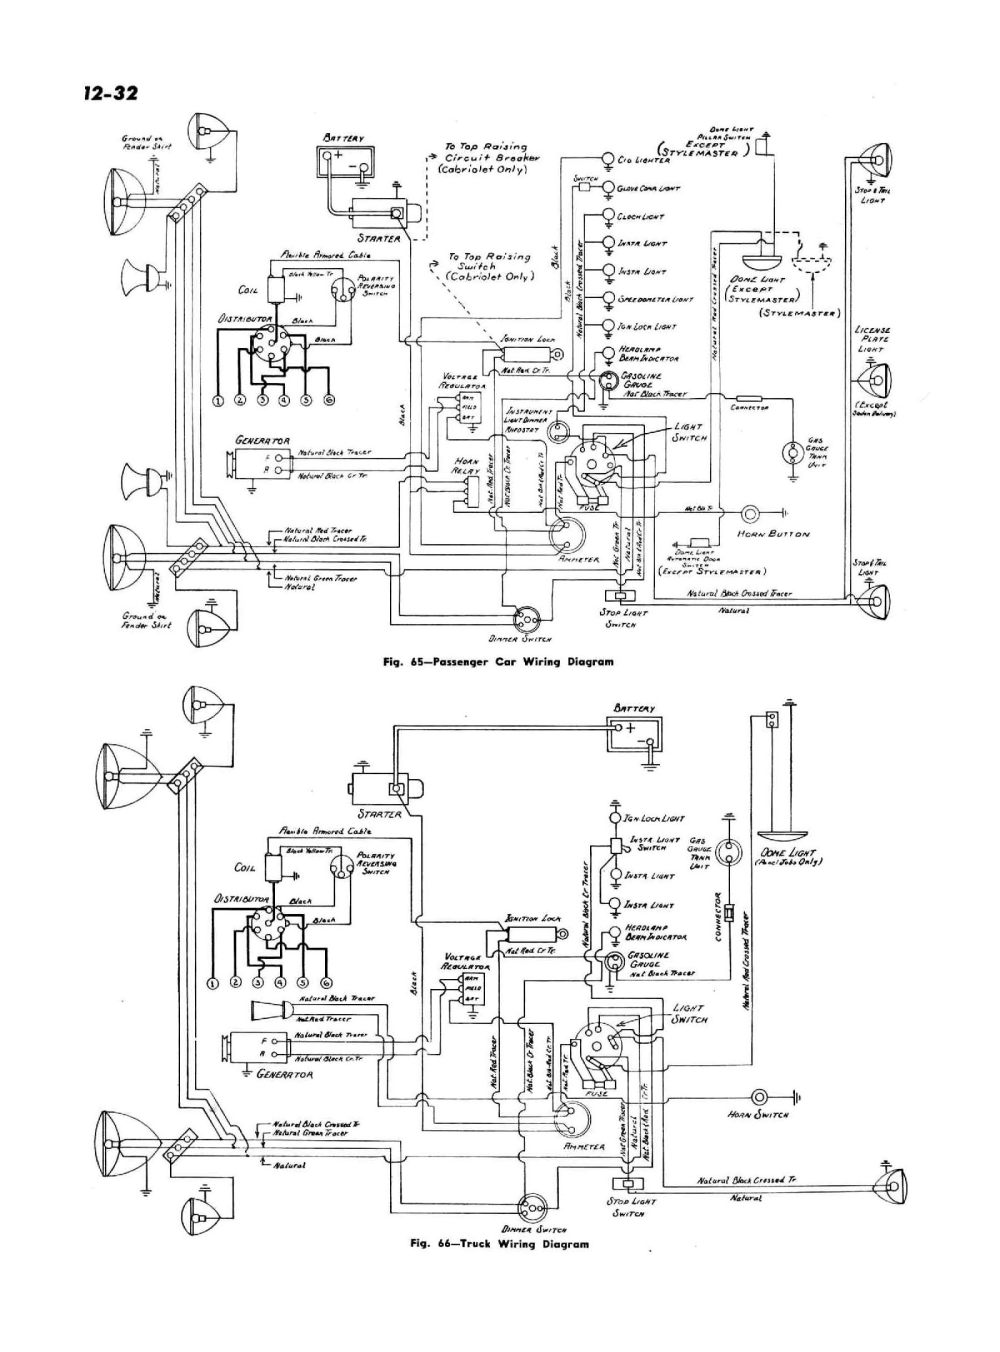 medium resolution of wiring diagram for 1947 chevrolet truck extended wiring diagram voltage coil circuit diagram for the 1947 chevrolet trucks